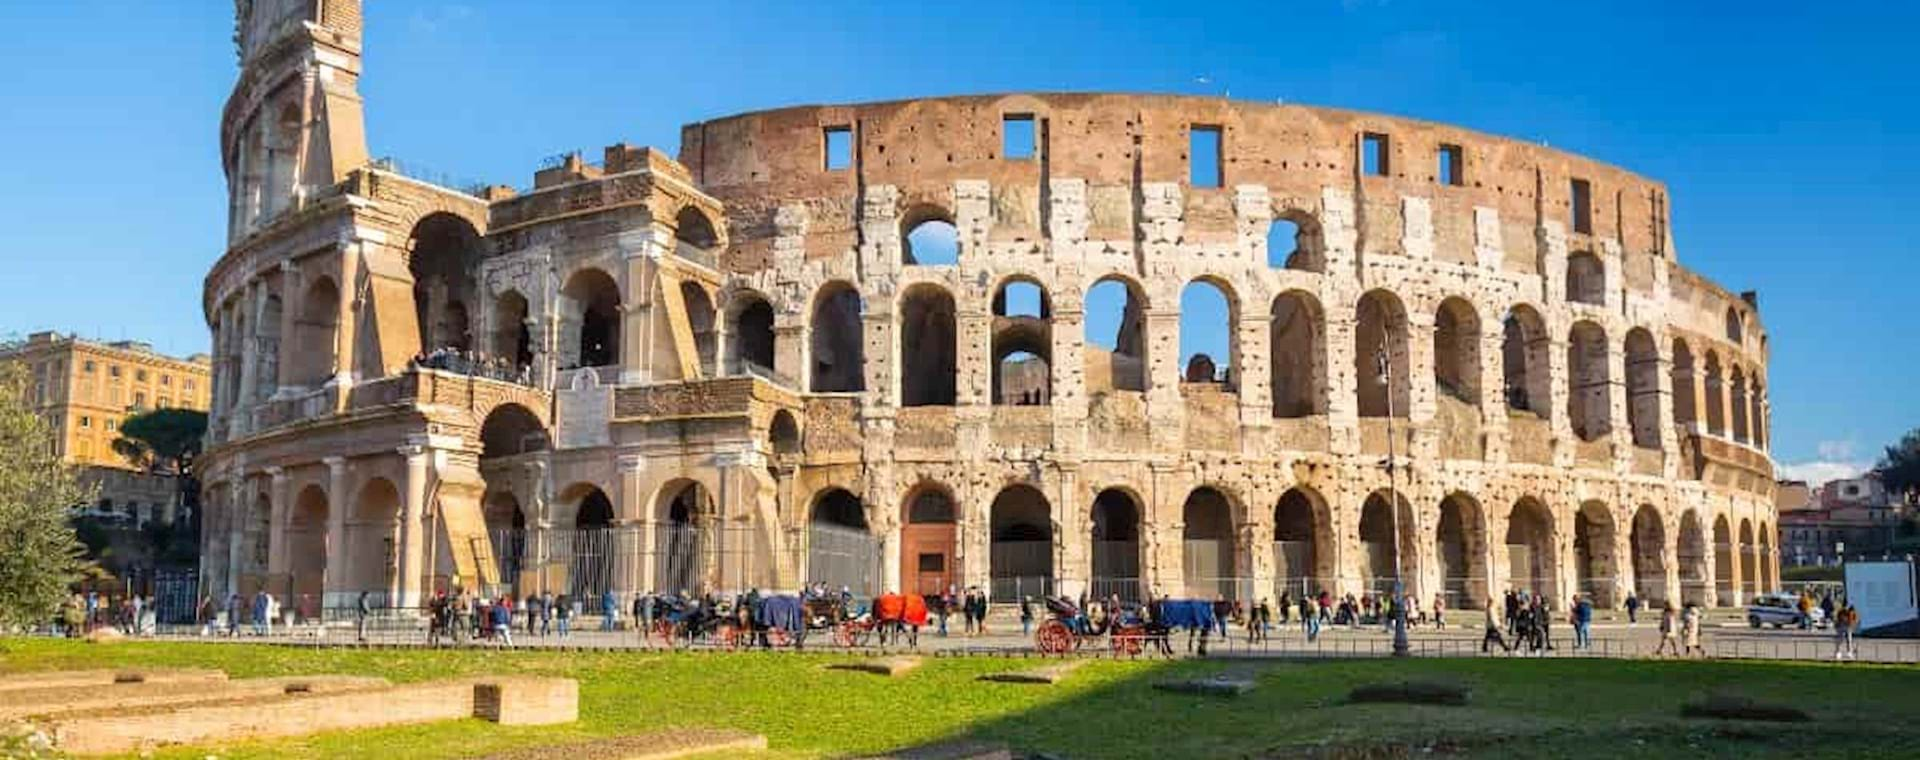 view of the magnificent Colosseum in Rome